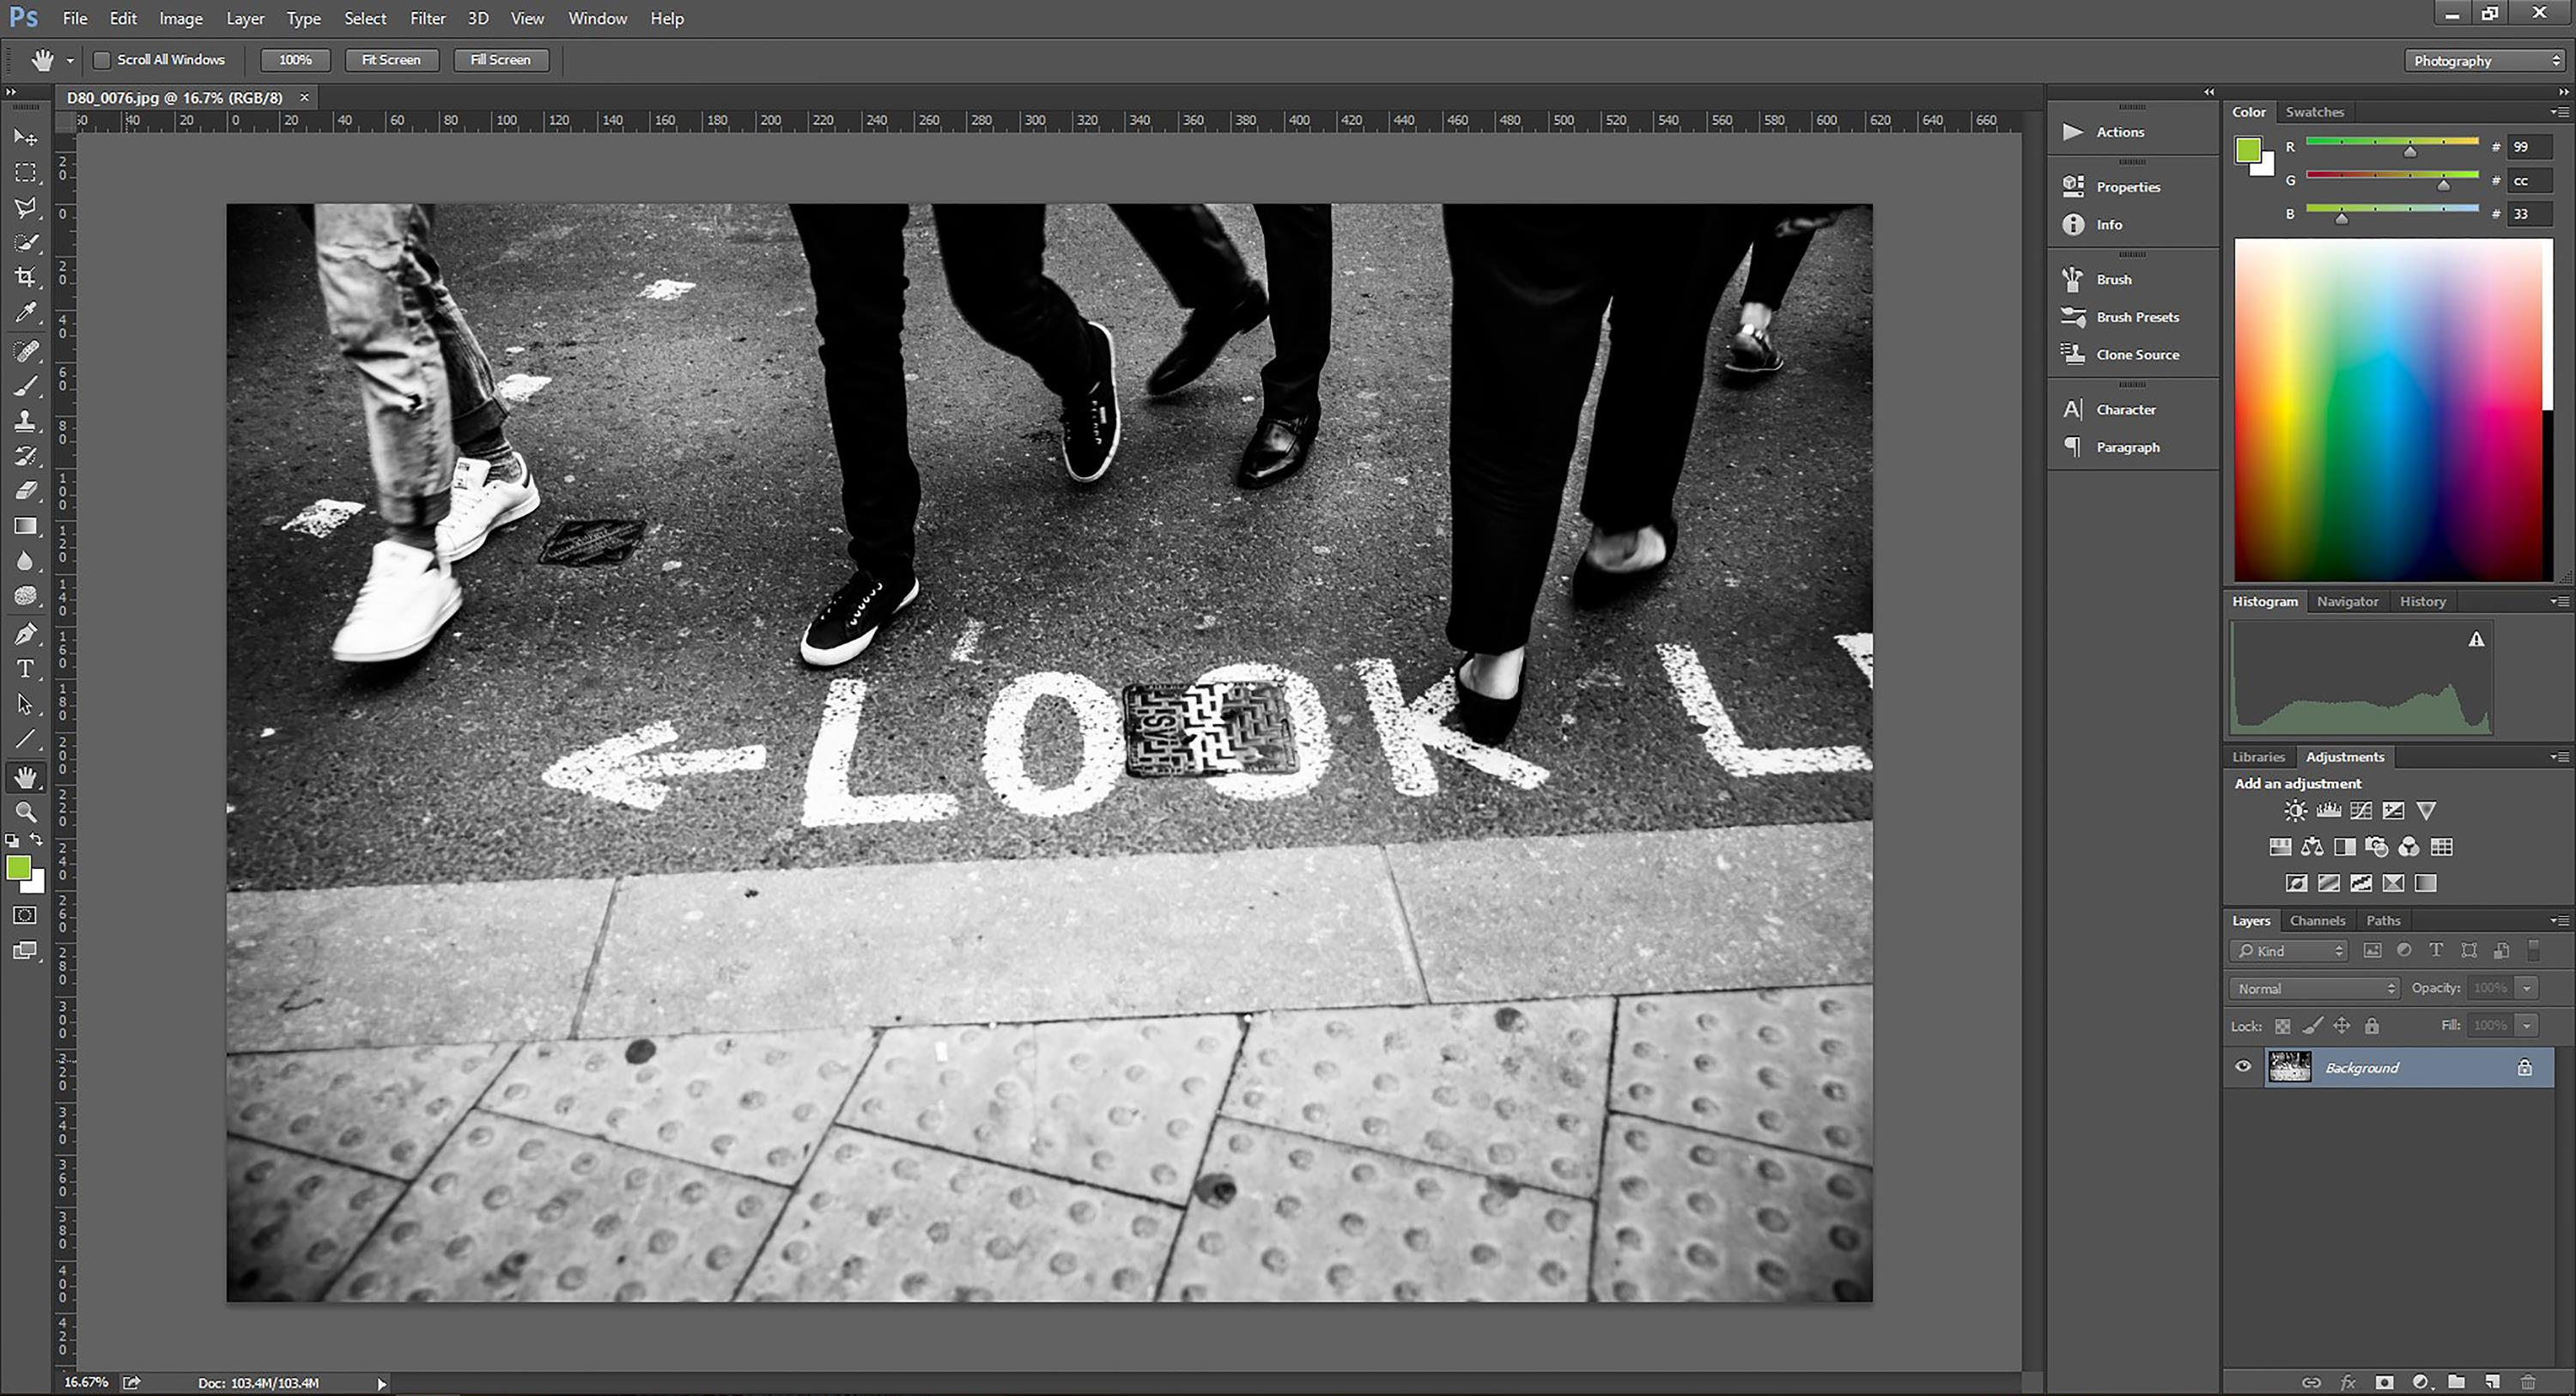 Resizing an image for the web with Photoshop